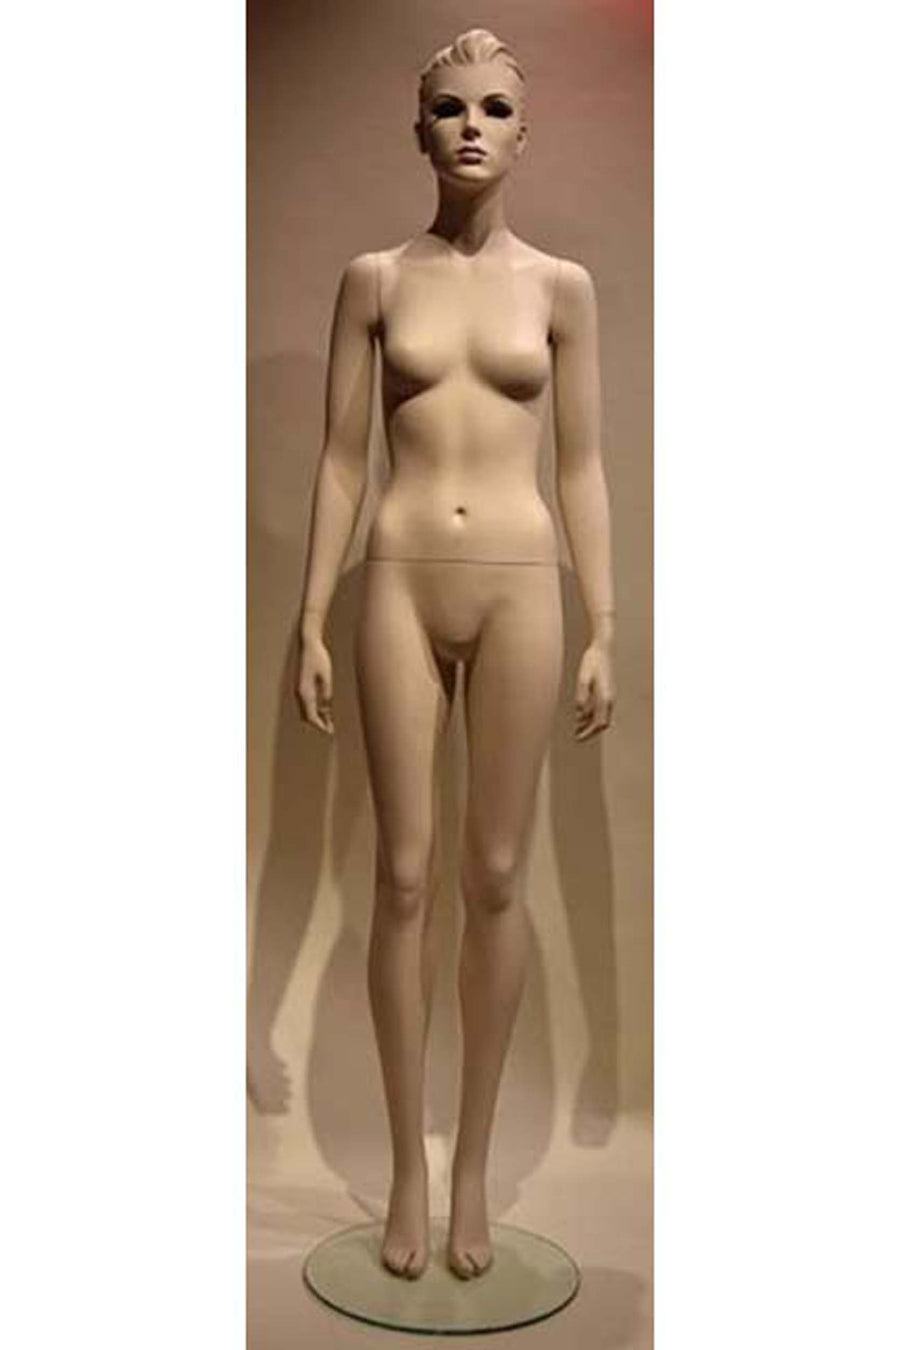 alabaster female mannequin with arms at sides and legs together